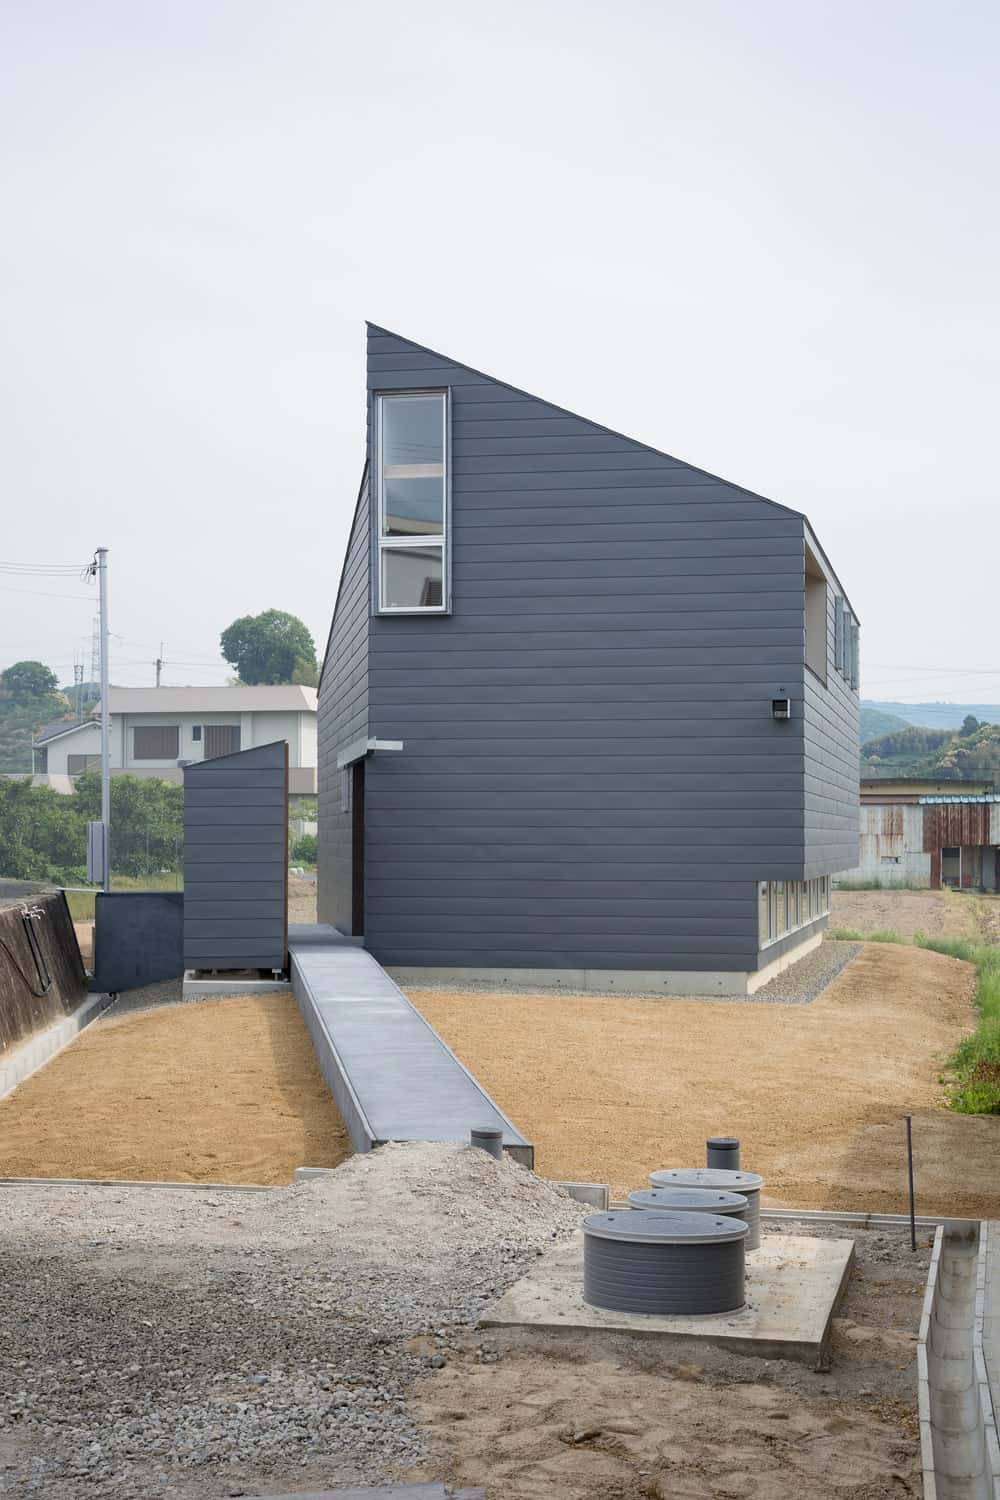 This is a view of the side elevation of the house showcasing more of the gray exterior walls paired with small windows.